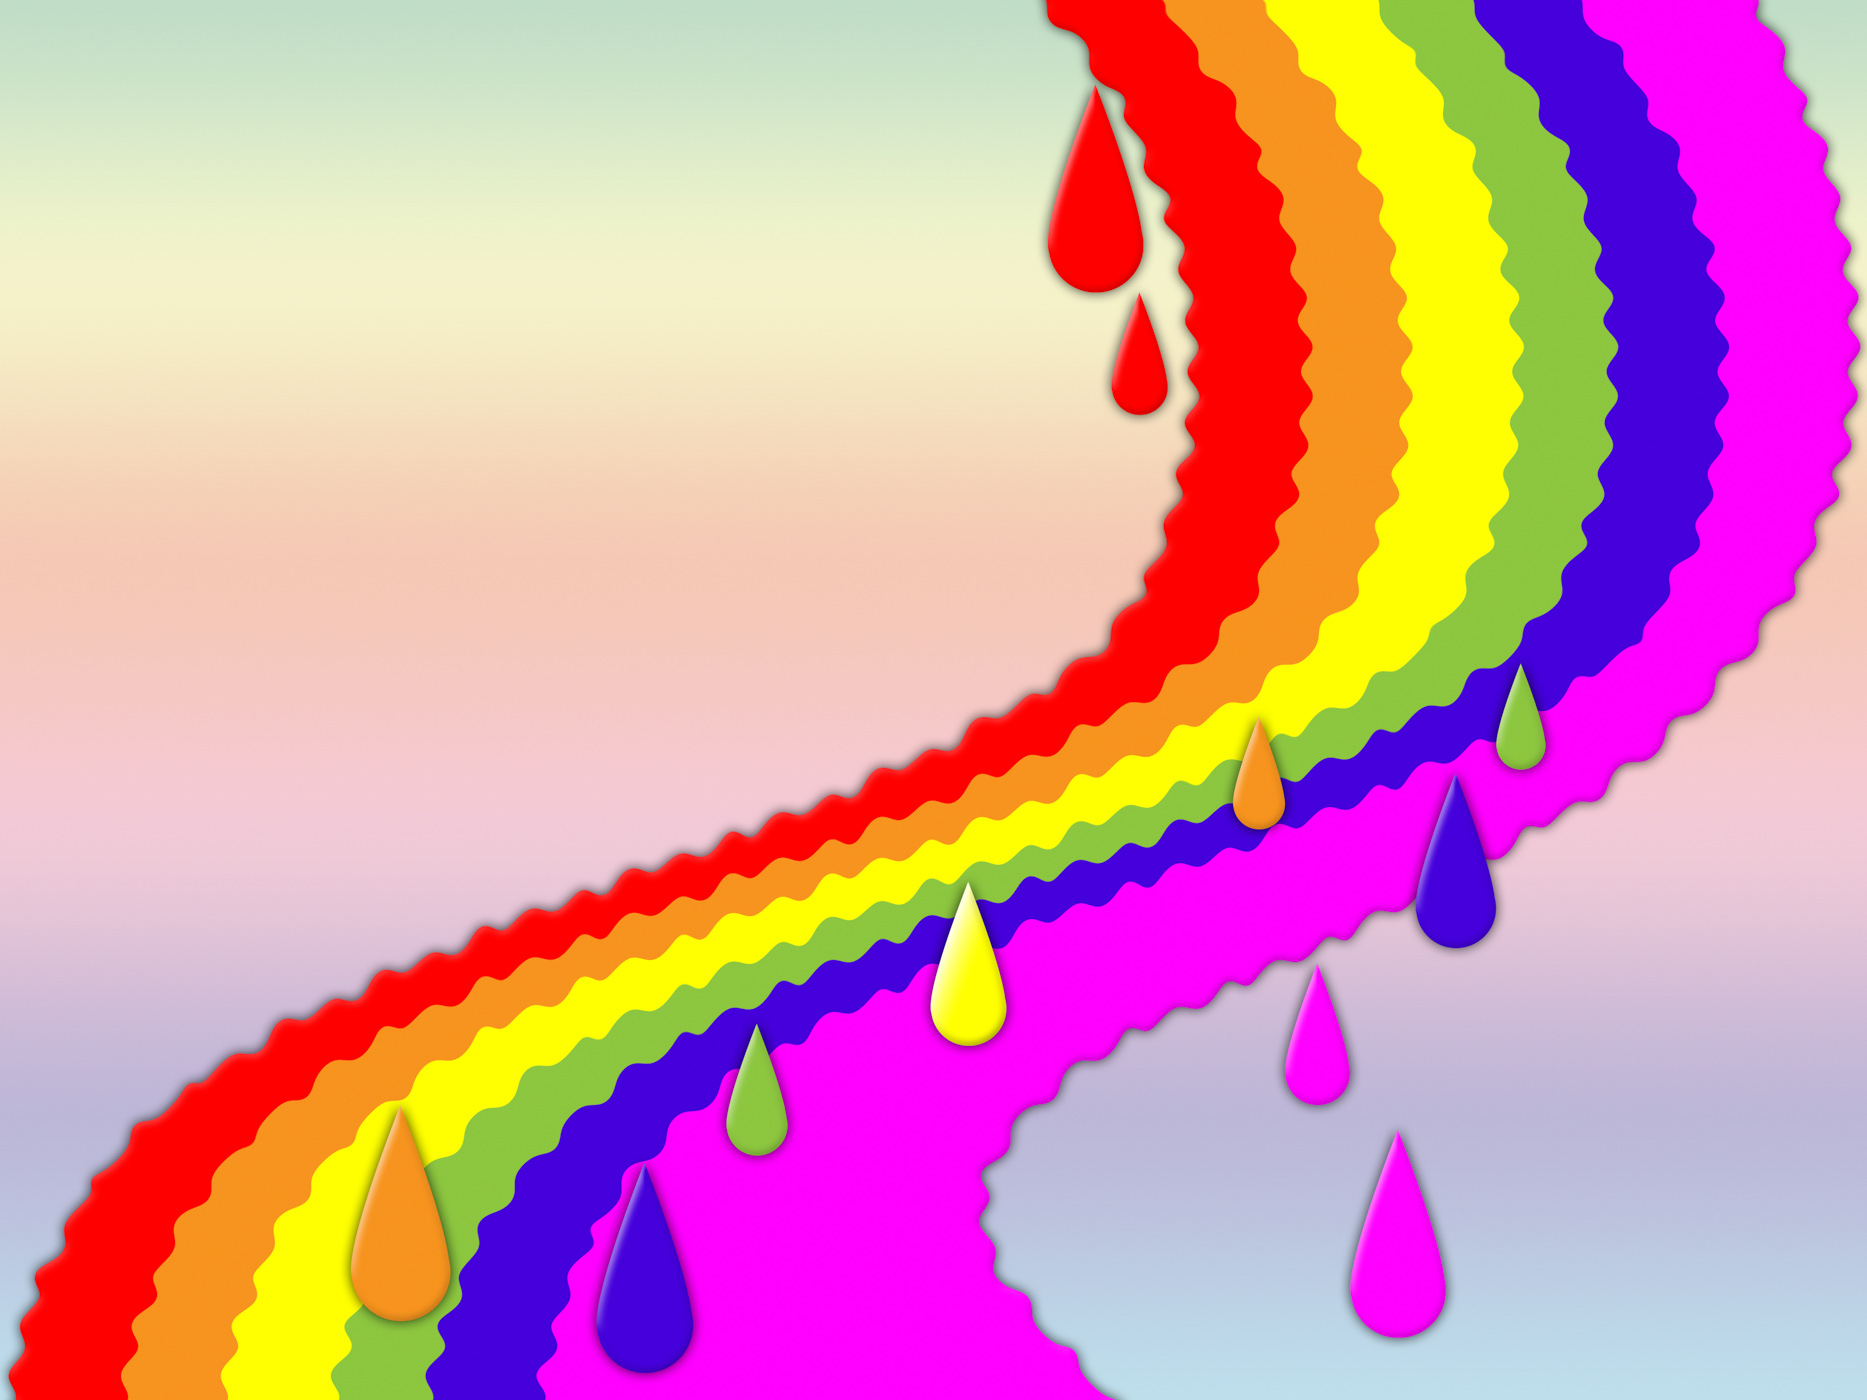 Rainbow background shows dripping art and colorful photo